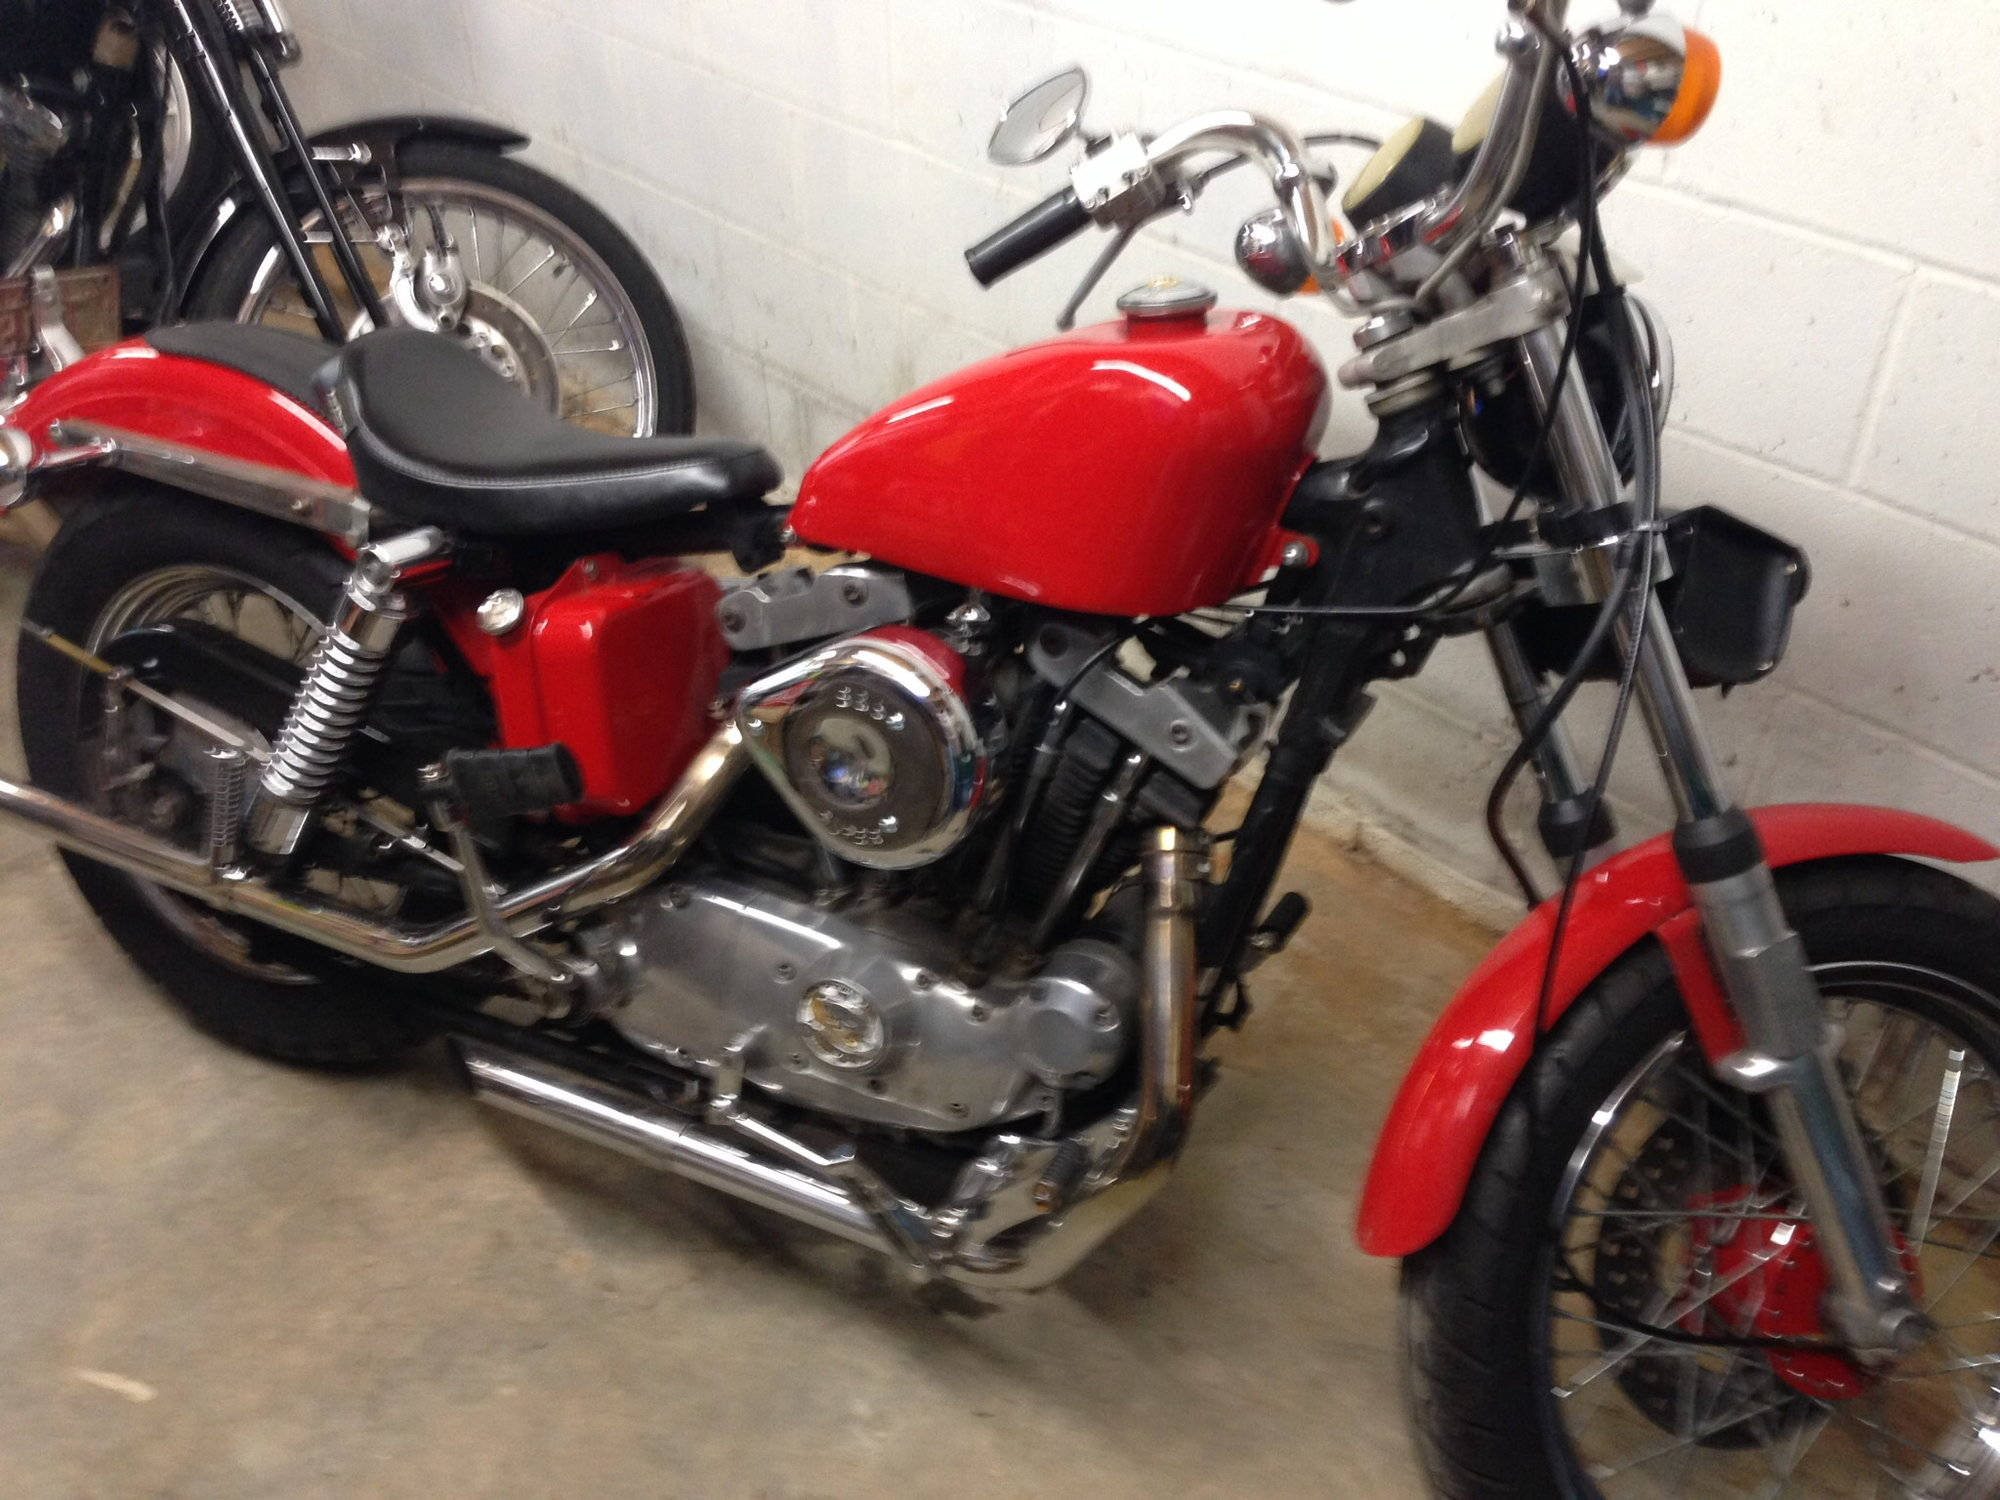 Show Your Ironhead Sportster - Page 7 - Harley Davidson Forums